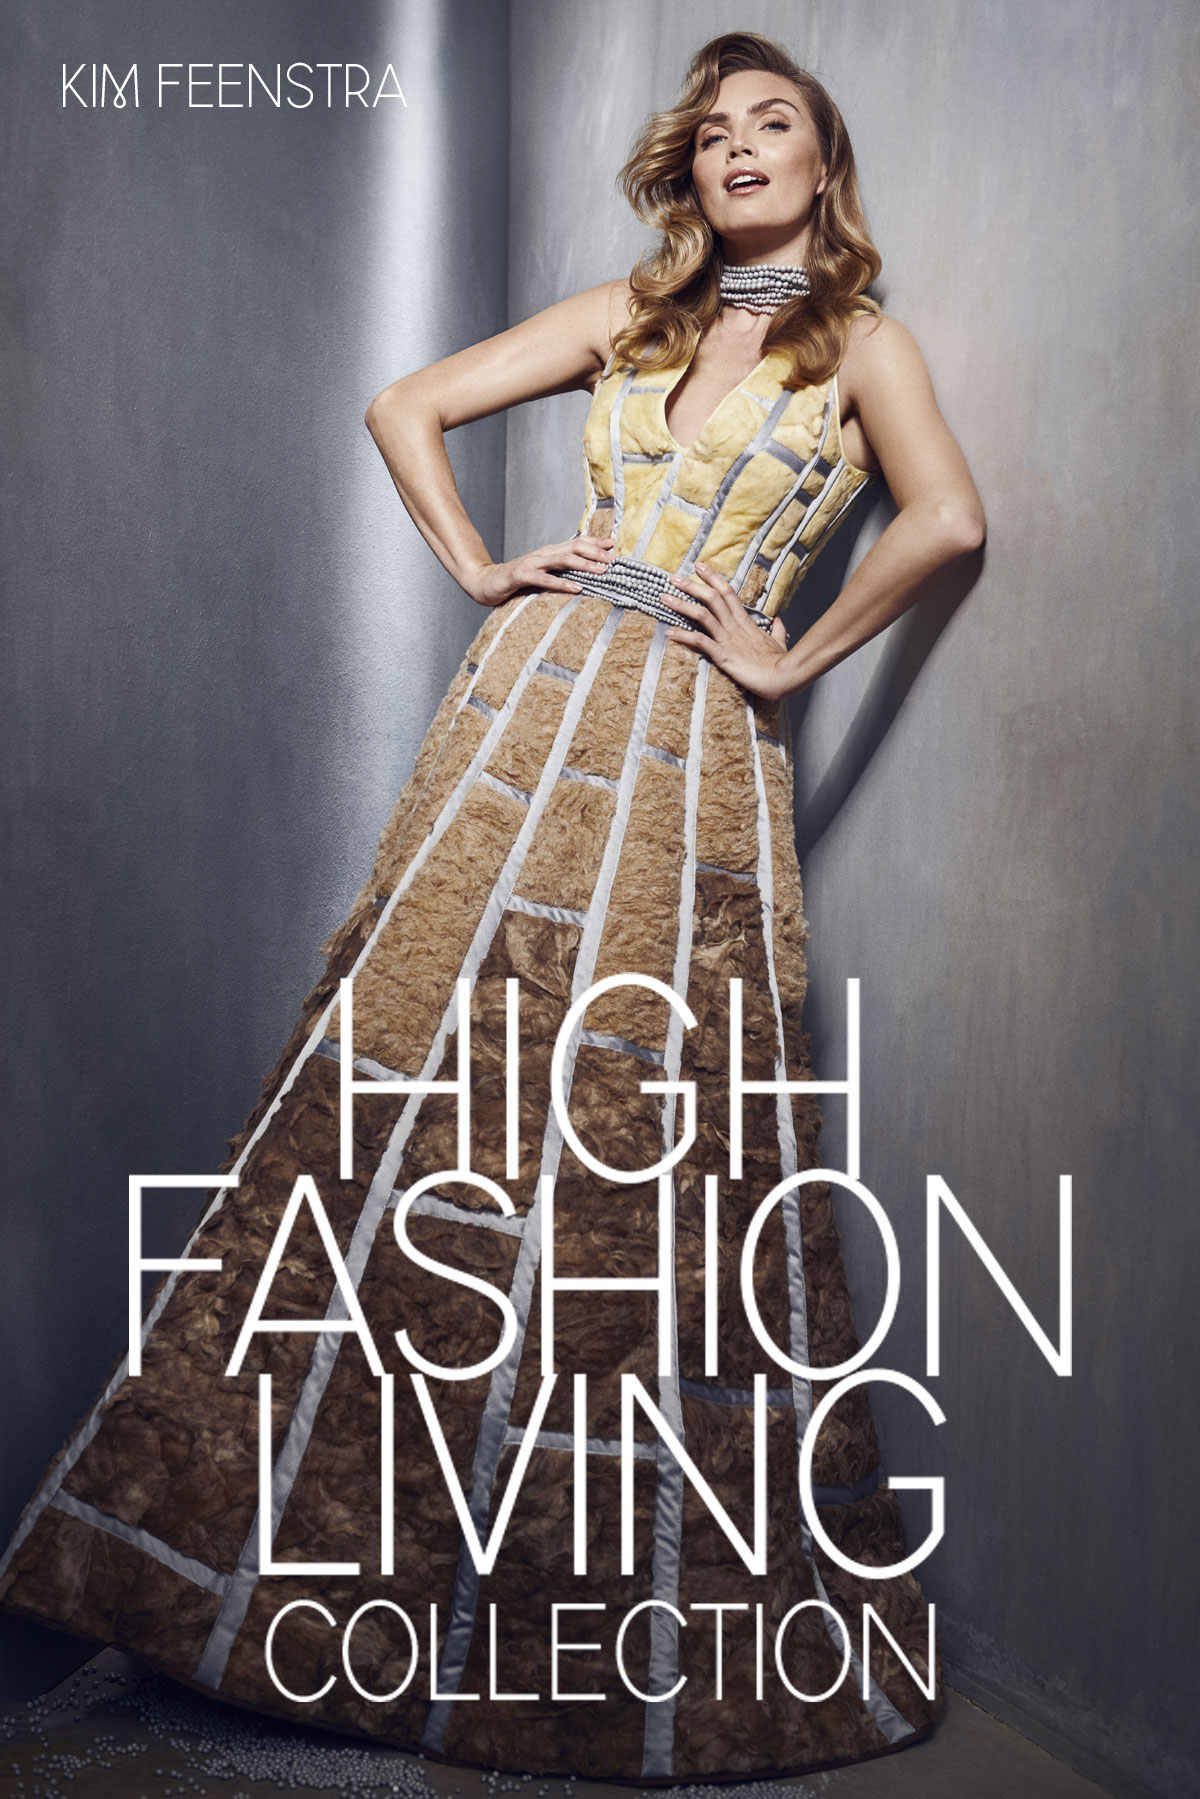 High Fashion Living Collection